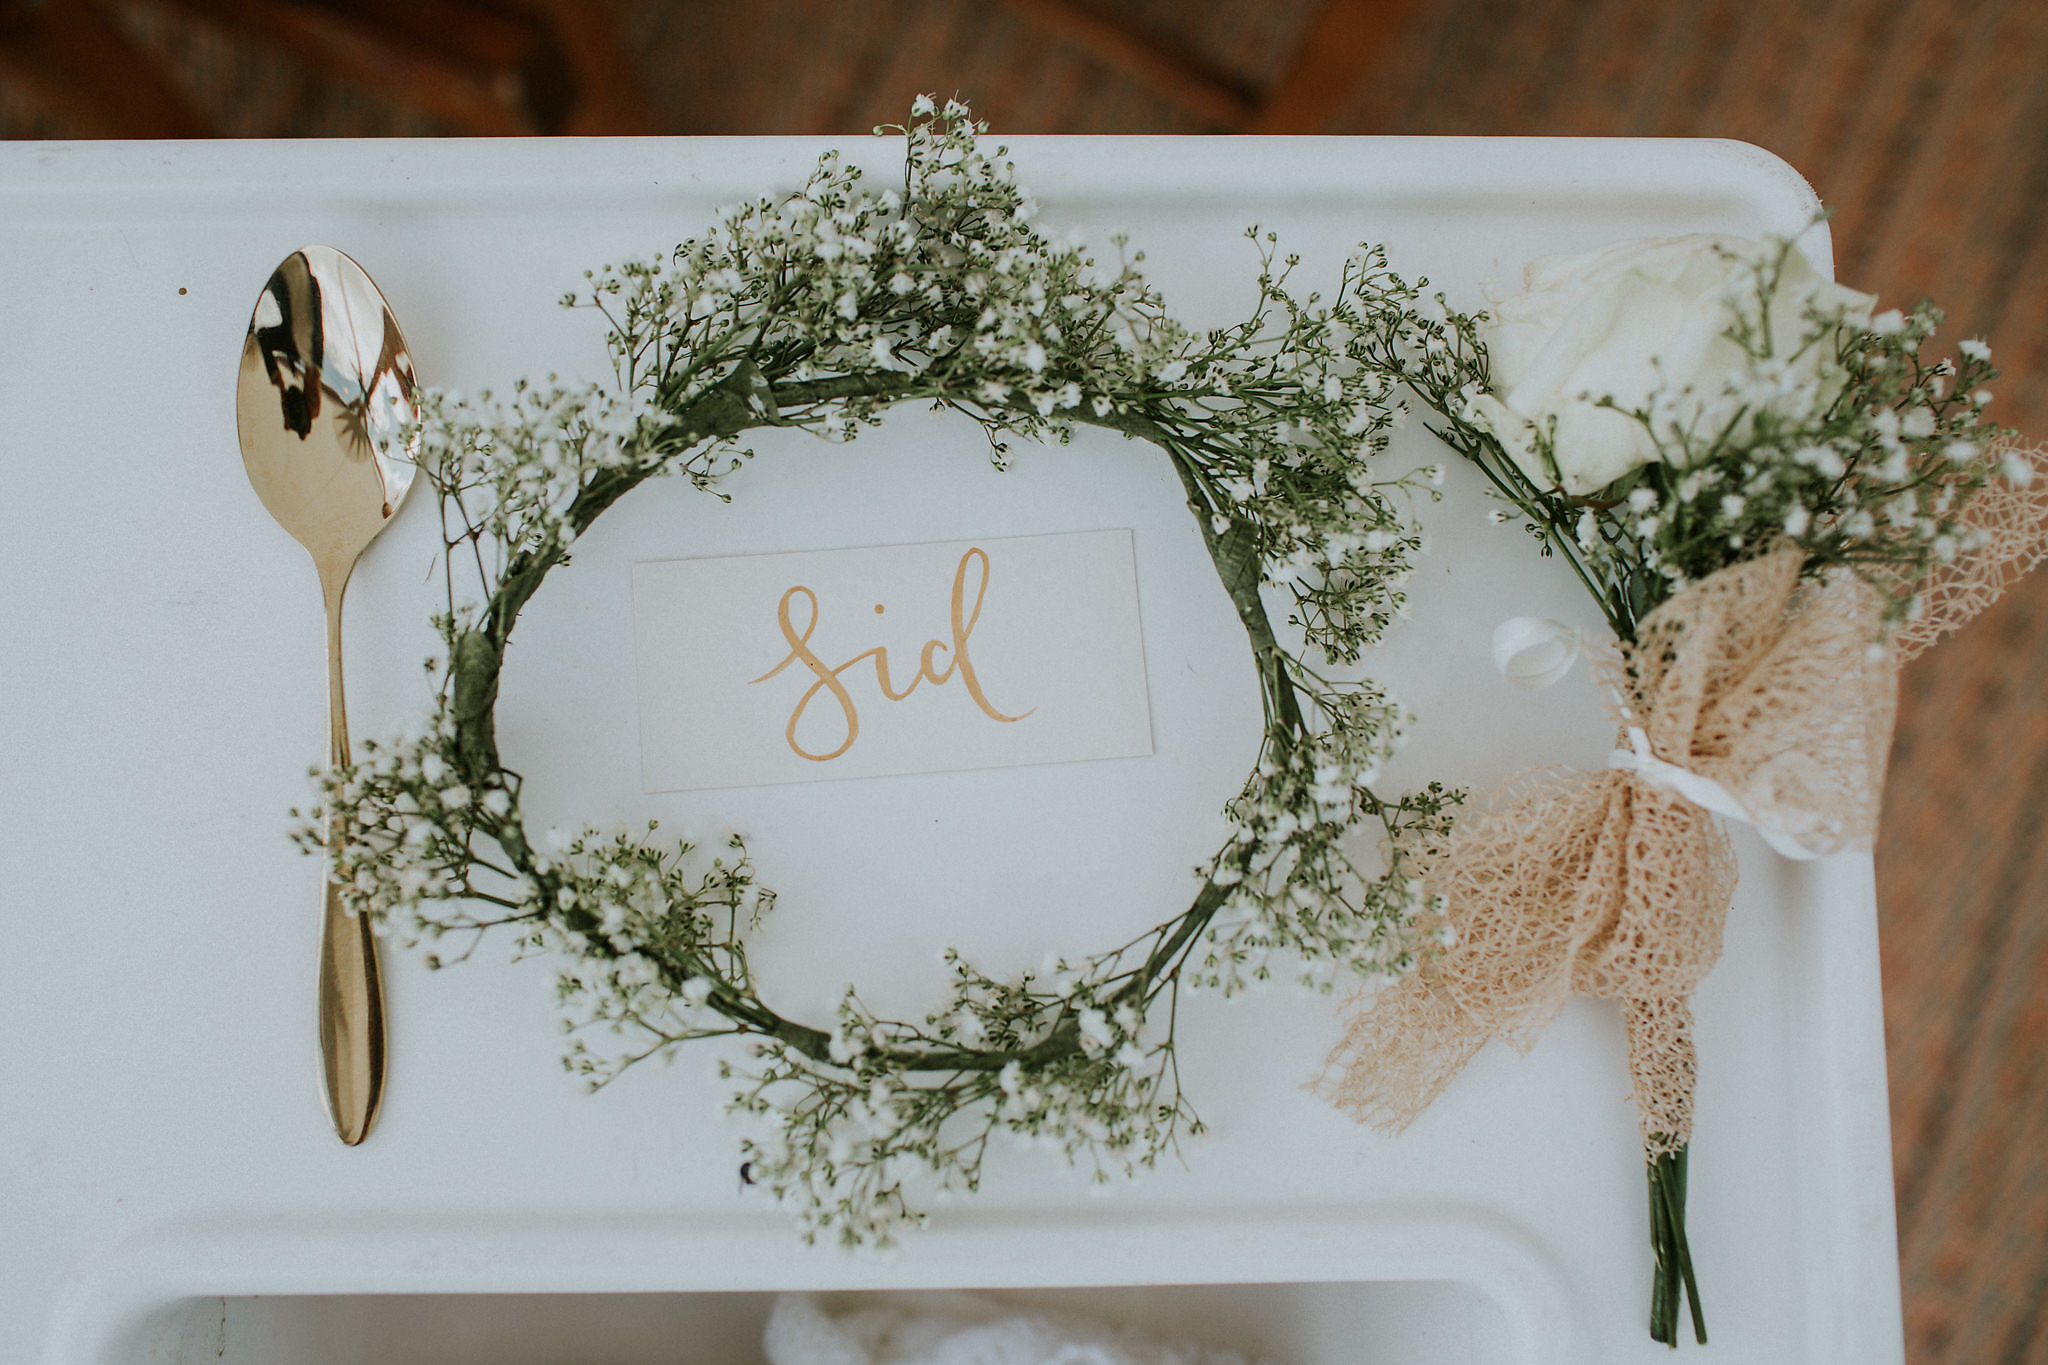 Place Name Bridemaid Lettering